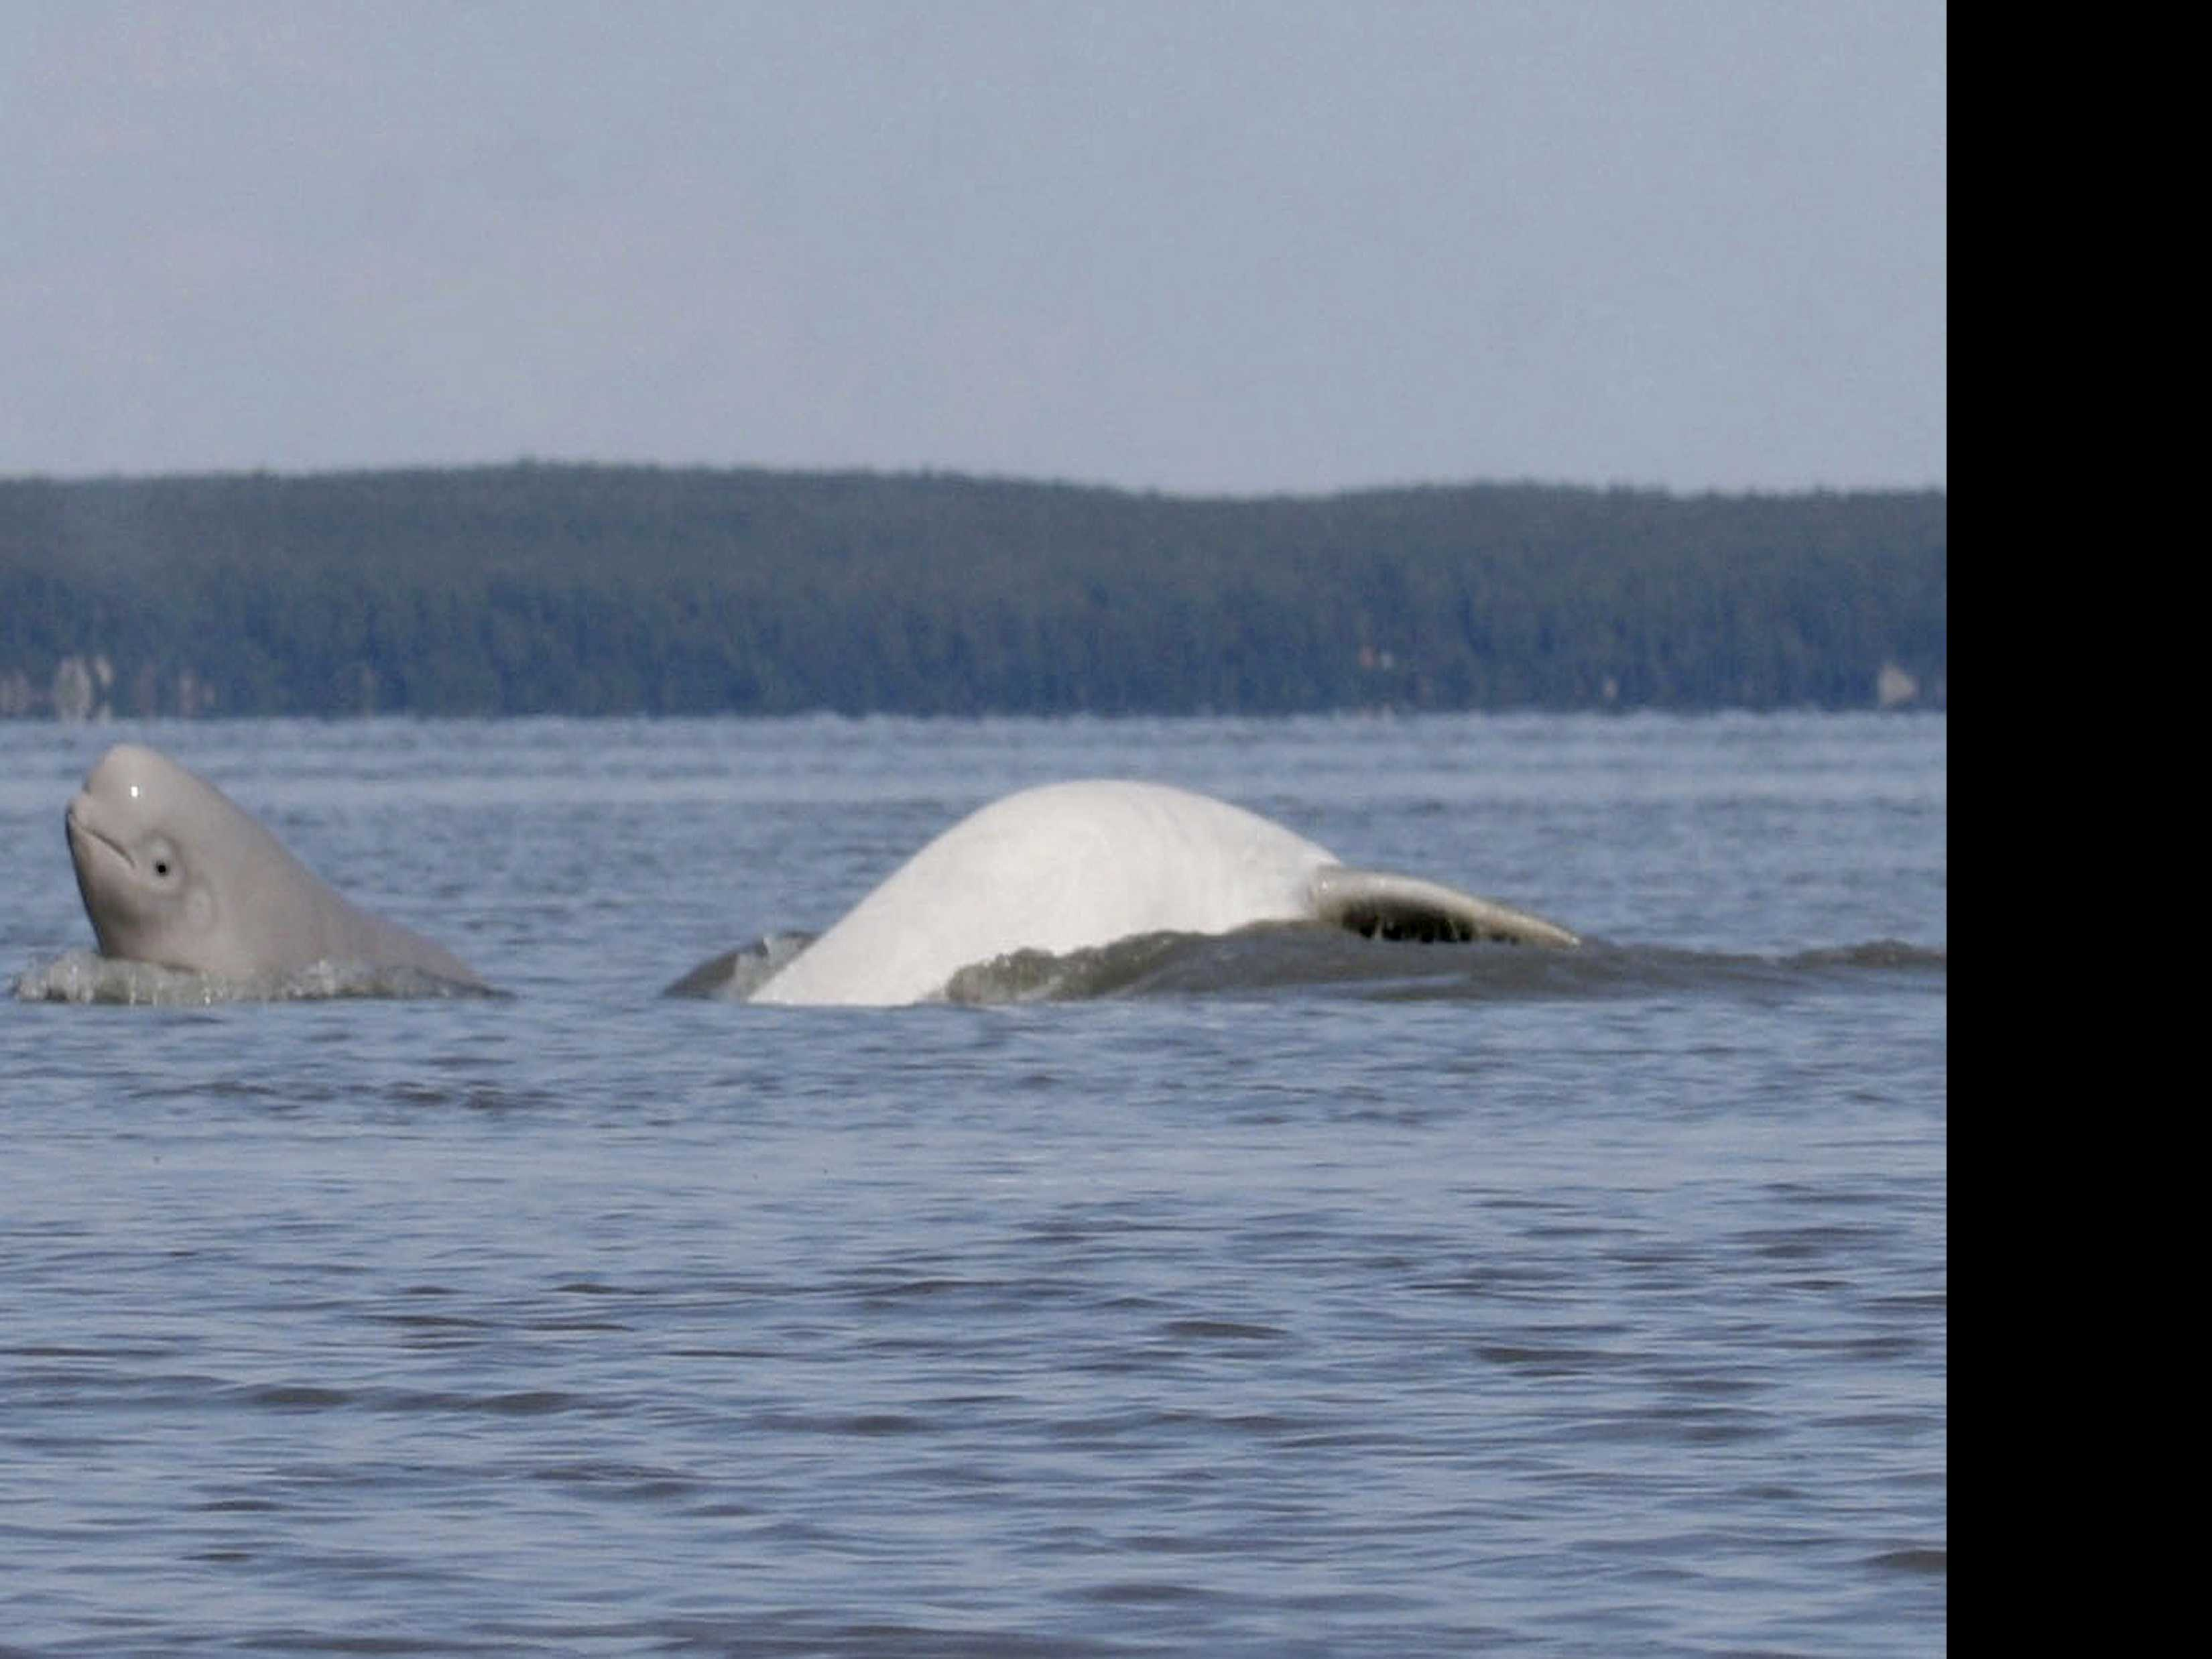 Research Shows Diet Shift of Beluga Whales in Alaska Inlet